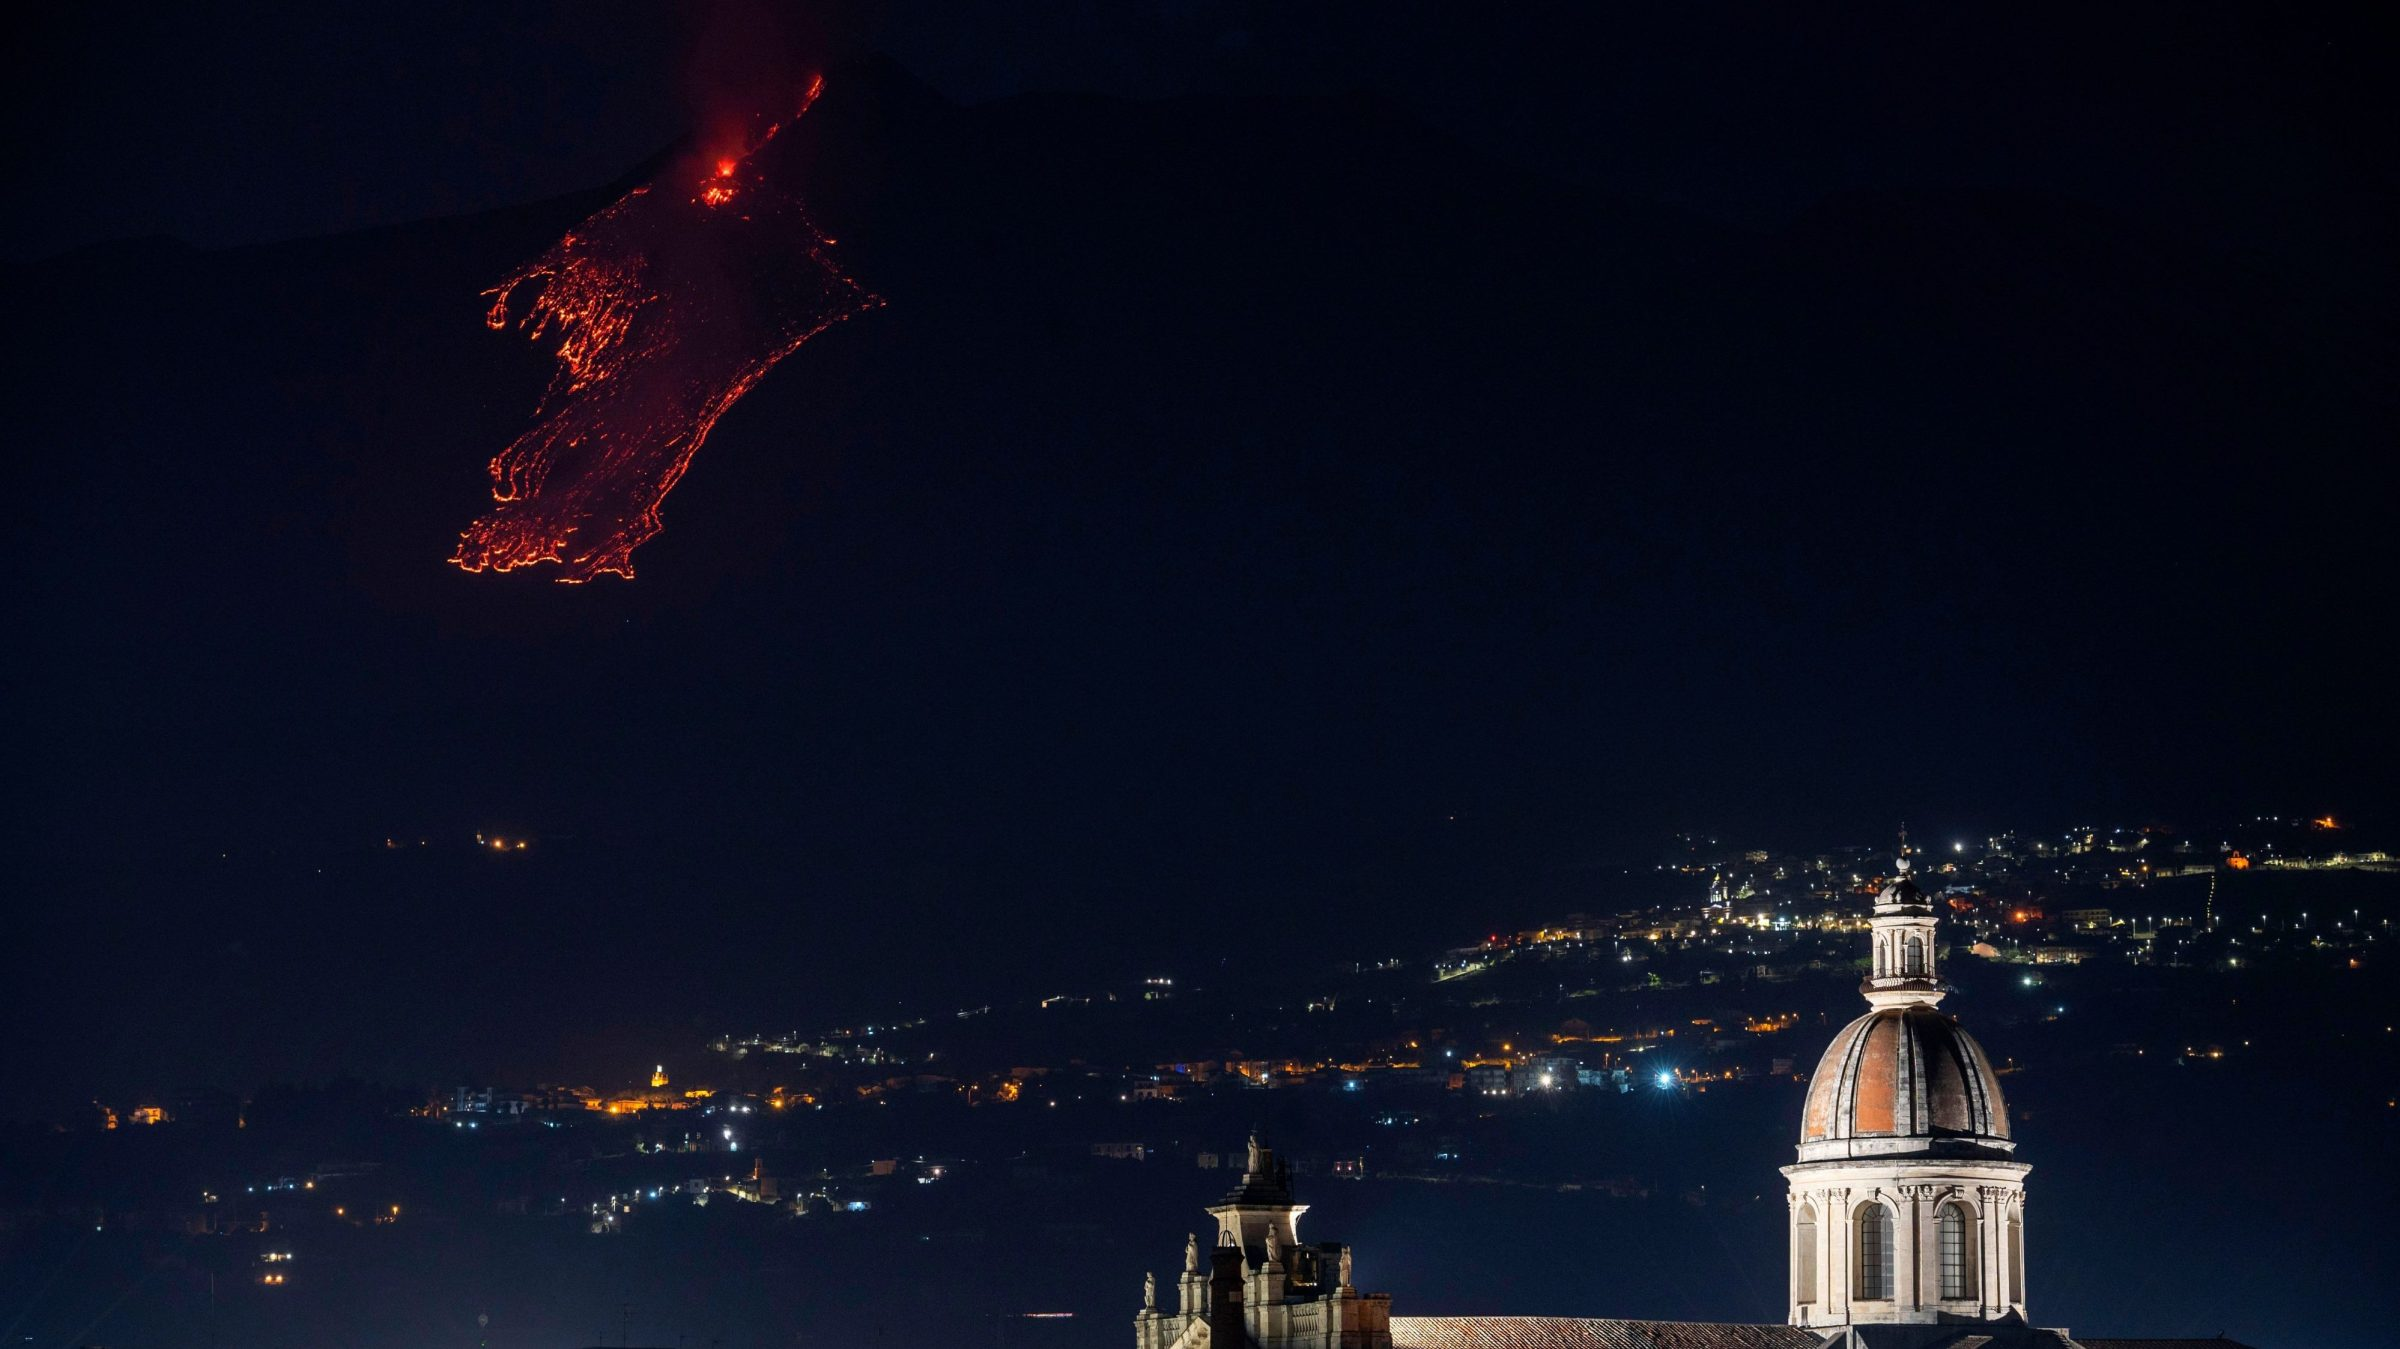 Lava flows down Etna with the city of Catania in the foreground